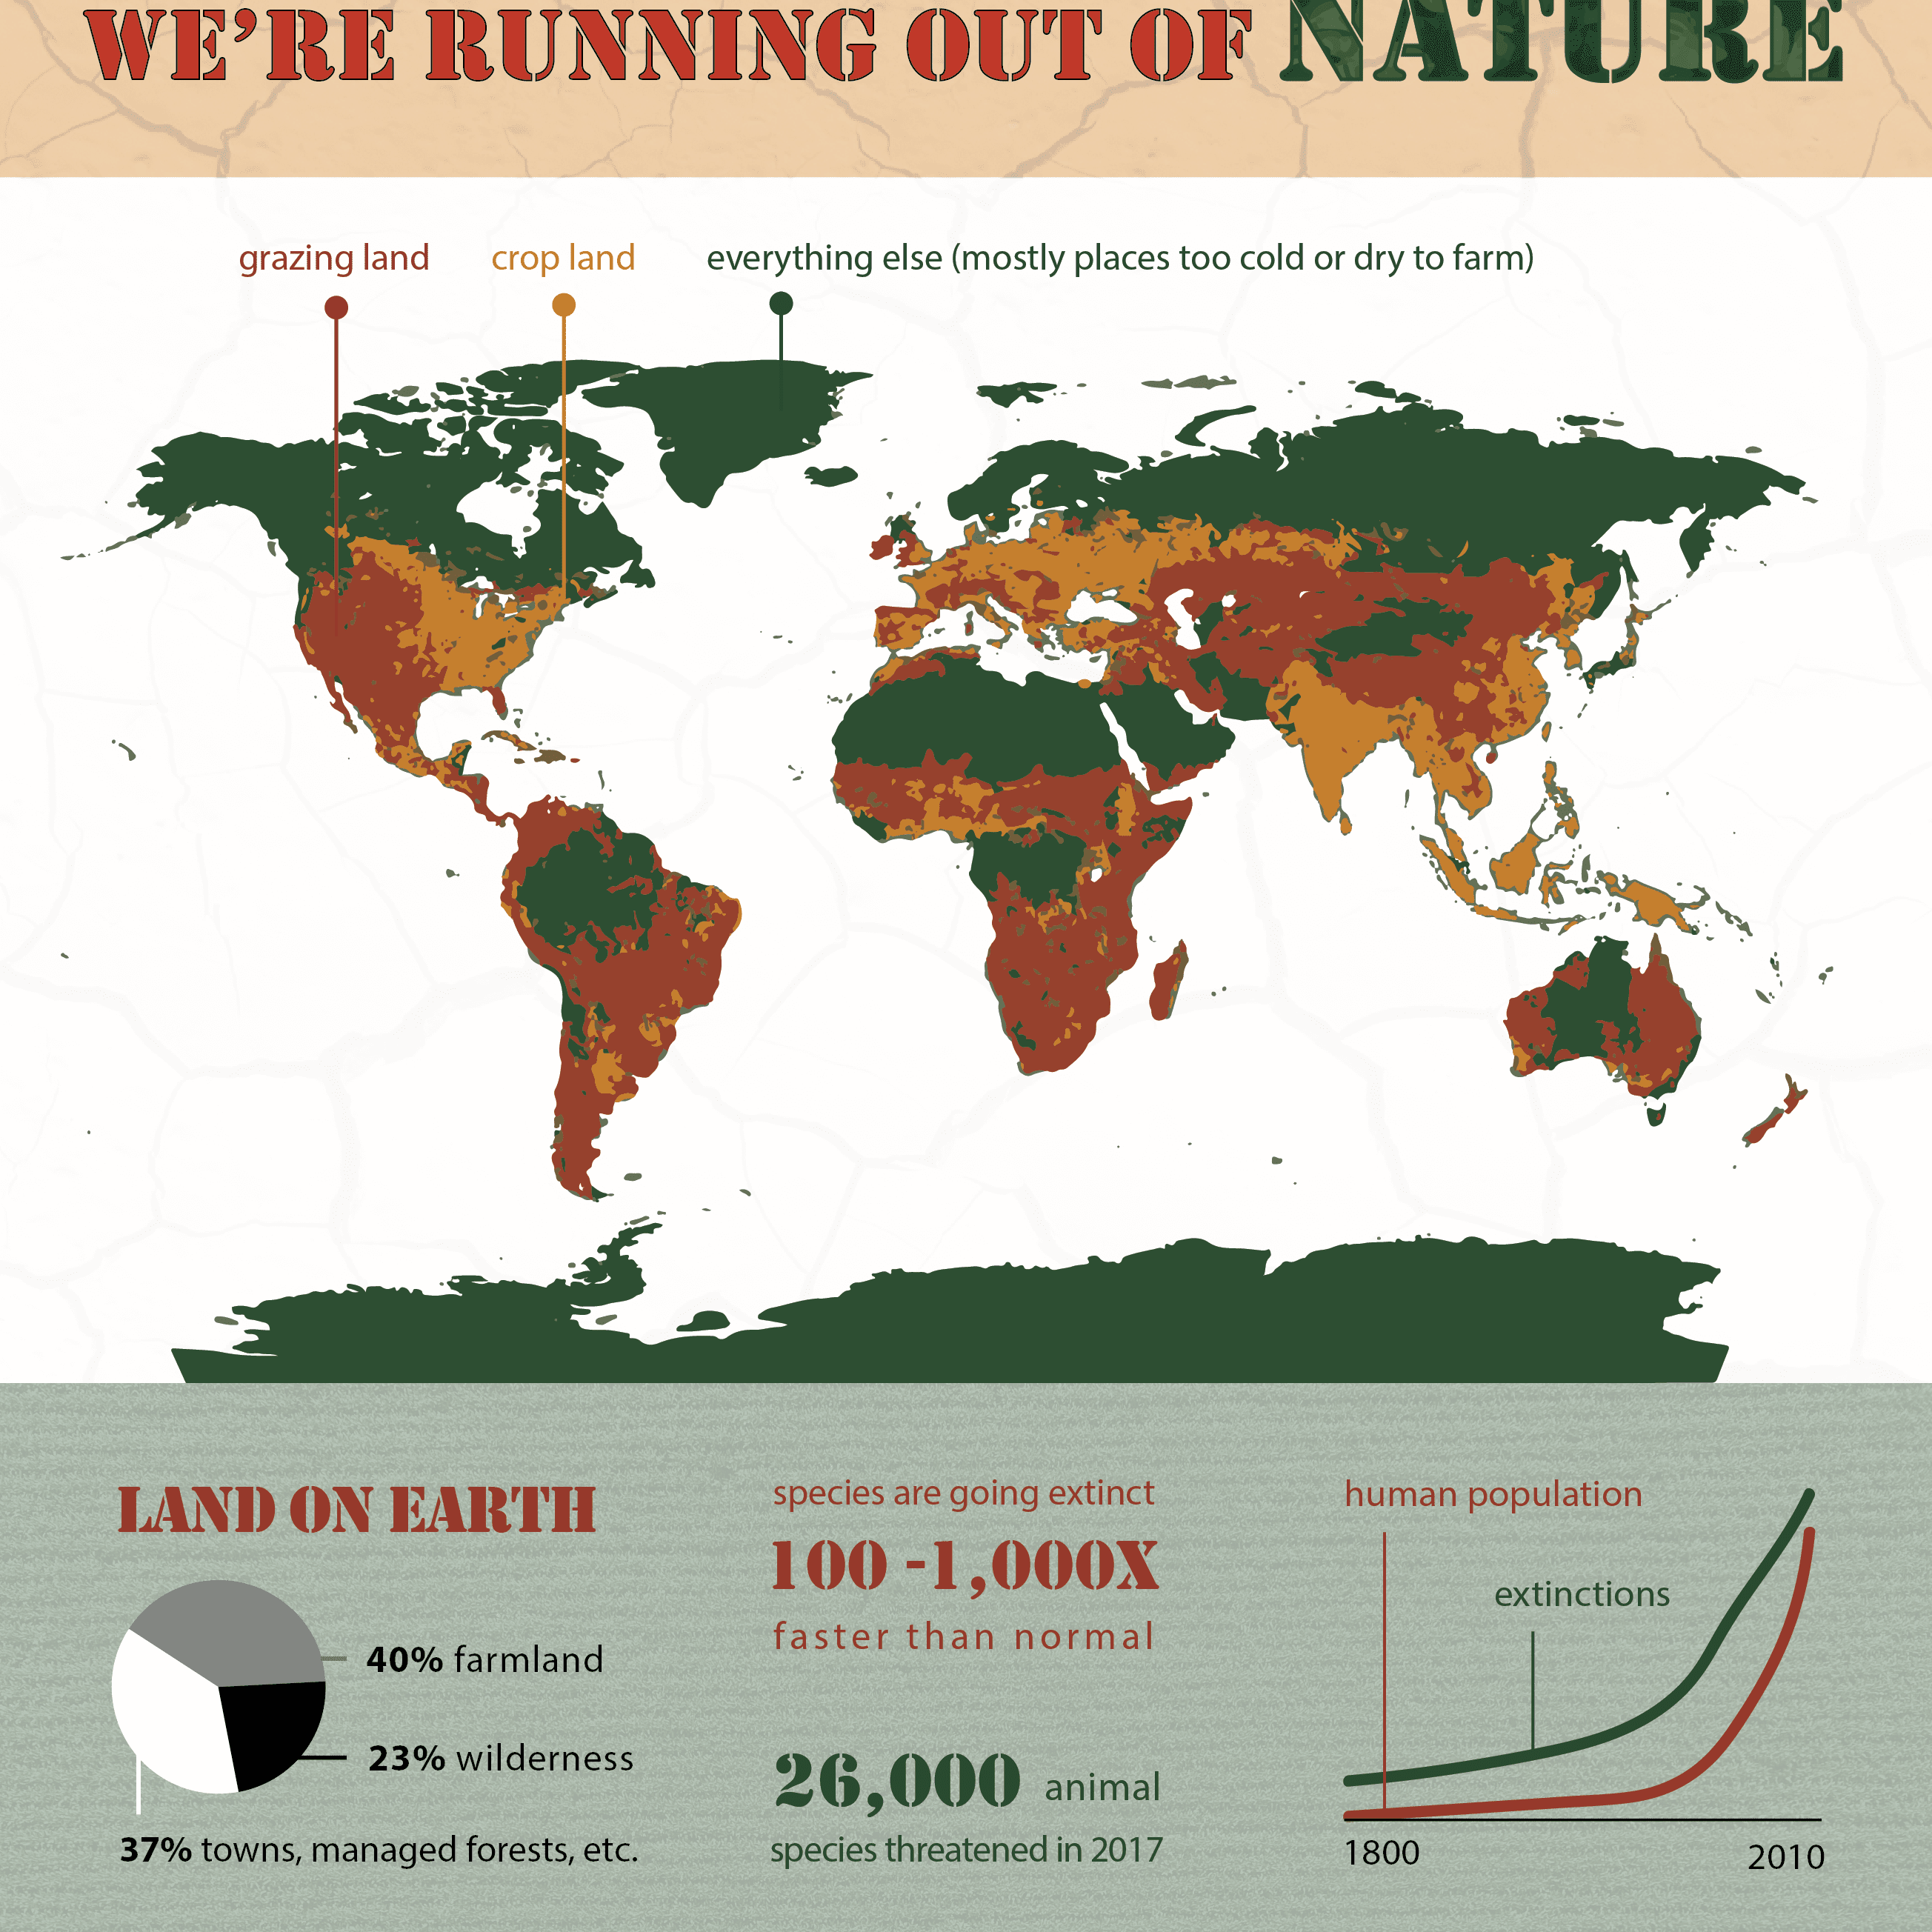 40 percent of land on earth is being used for farmland